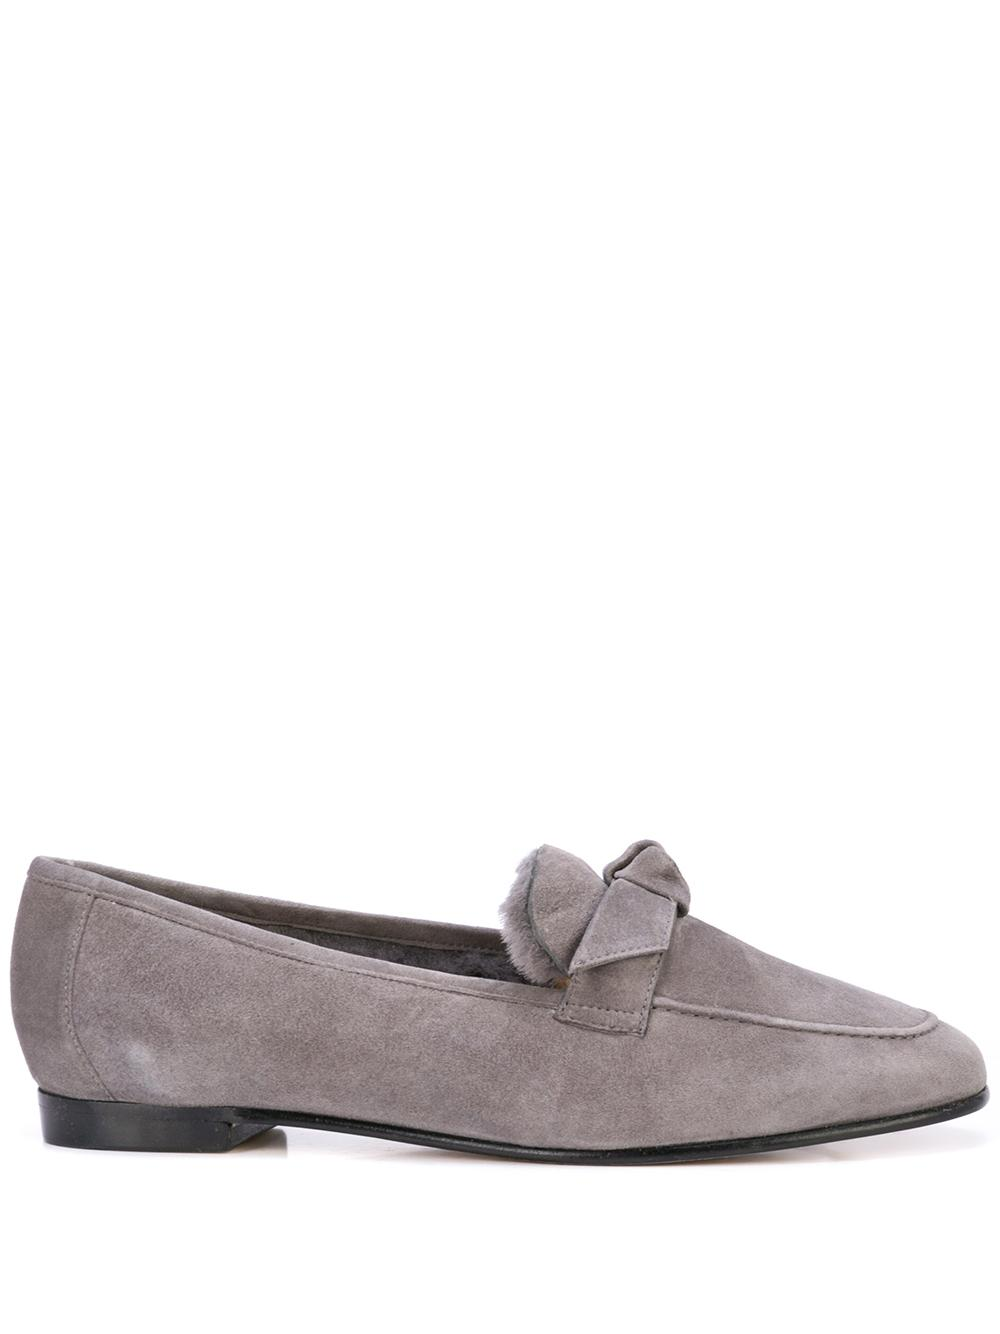 Becky Pelo 20mm Sheerling Loafer